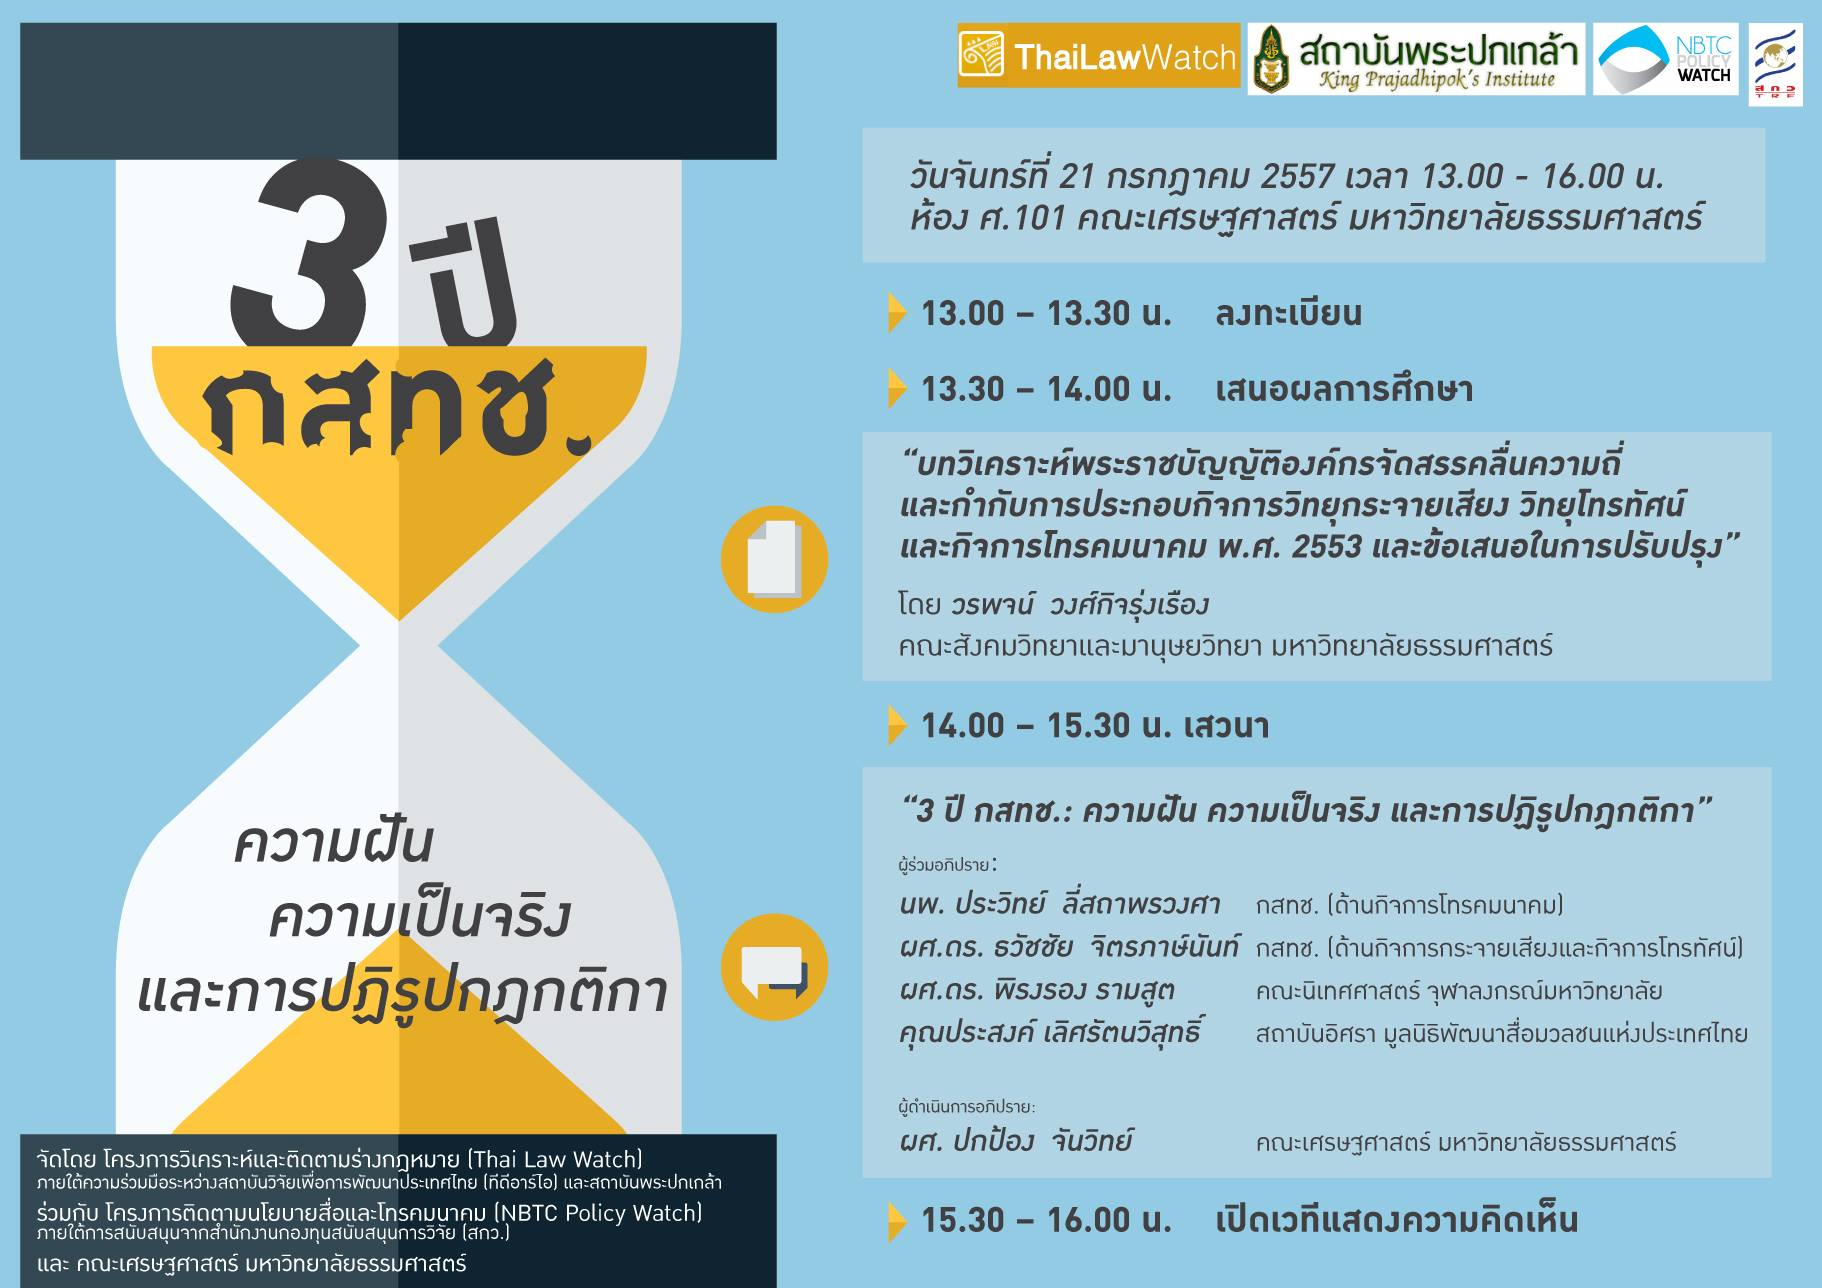 nbtc-policy-watch-21-july-2014